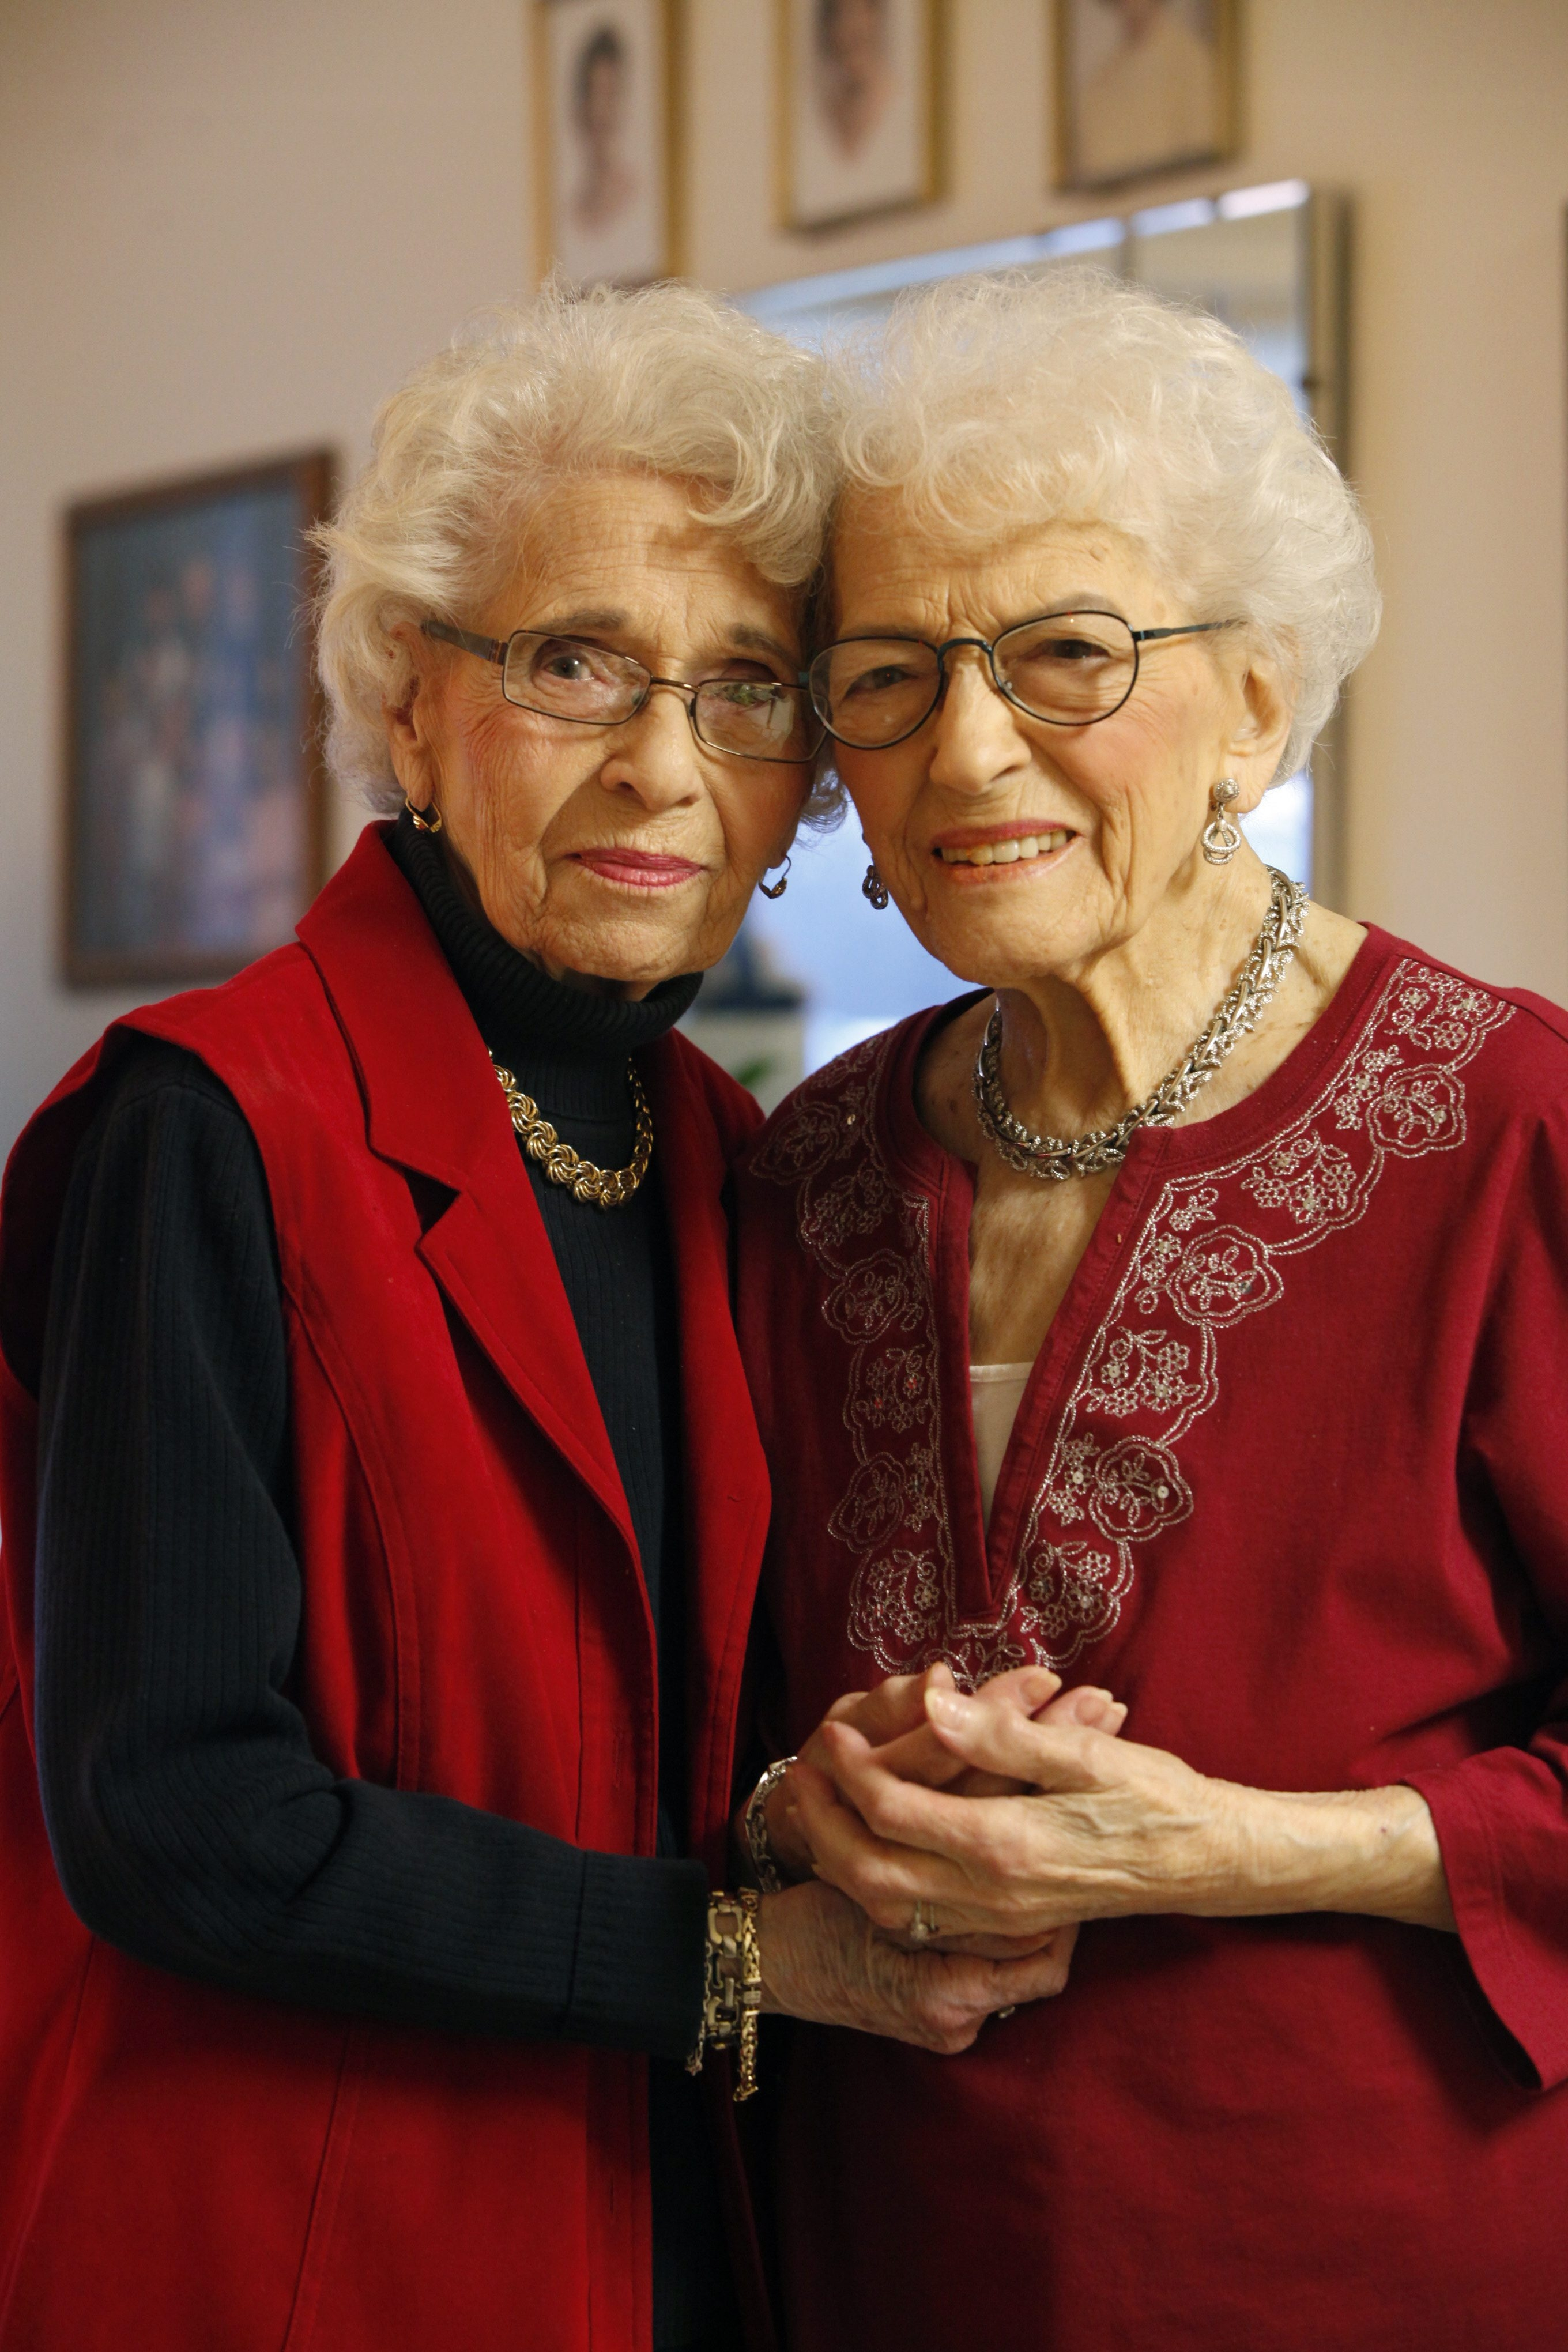 Louise Spampata, 99, left, and Nicoletta Sebastiano, 102, have stayed in touch through childhood, school, jobs and marriage.